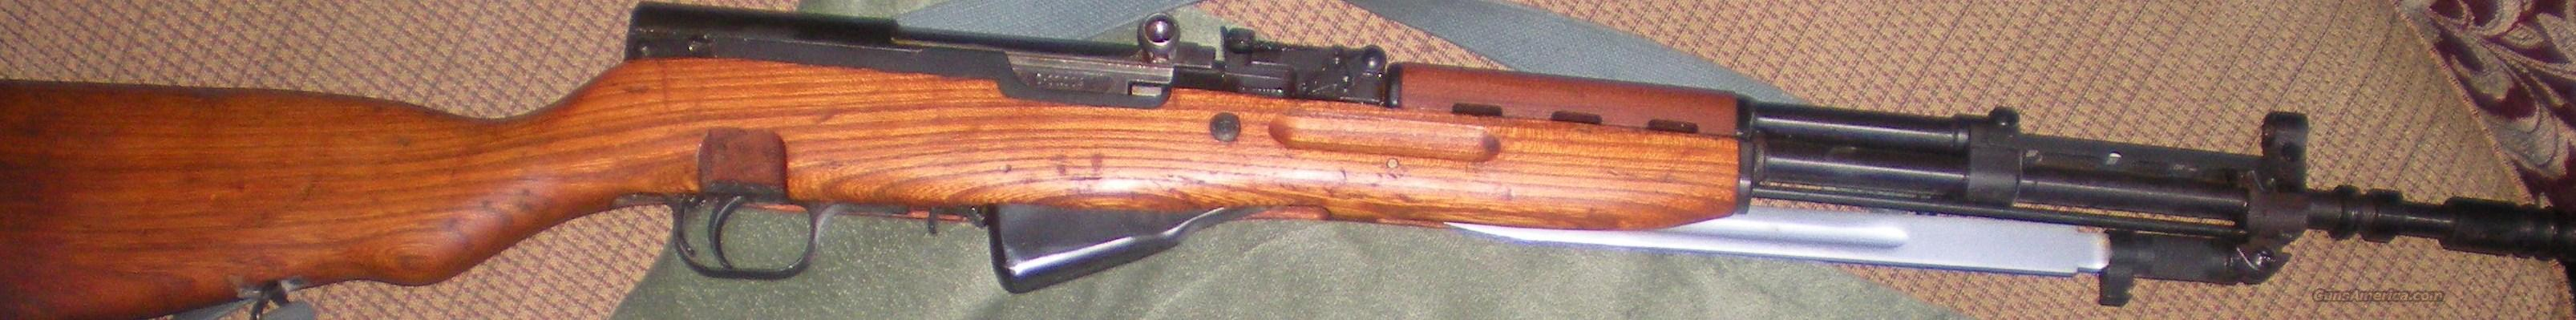 unissued yugo sks  Guns > Rifles > SKS Rifles